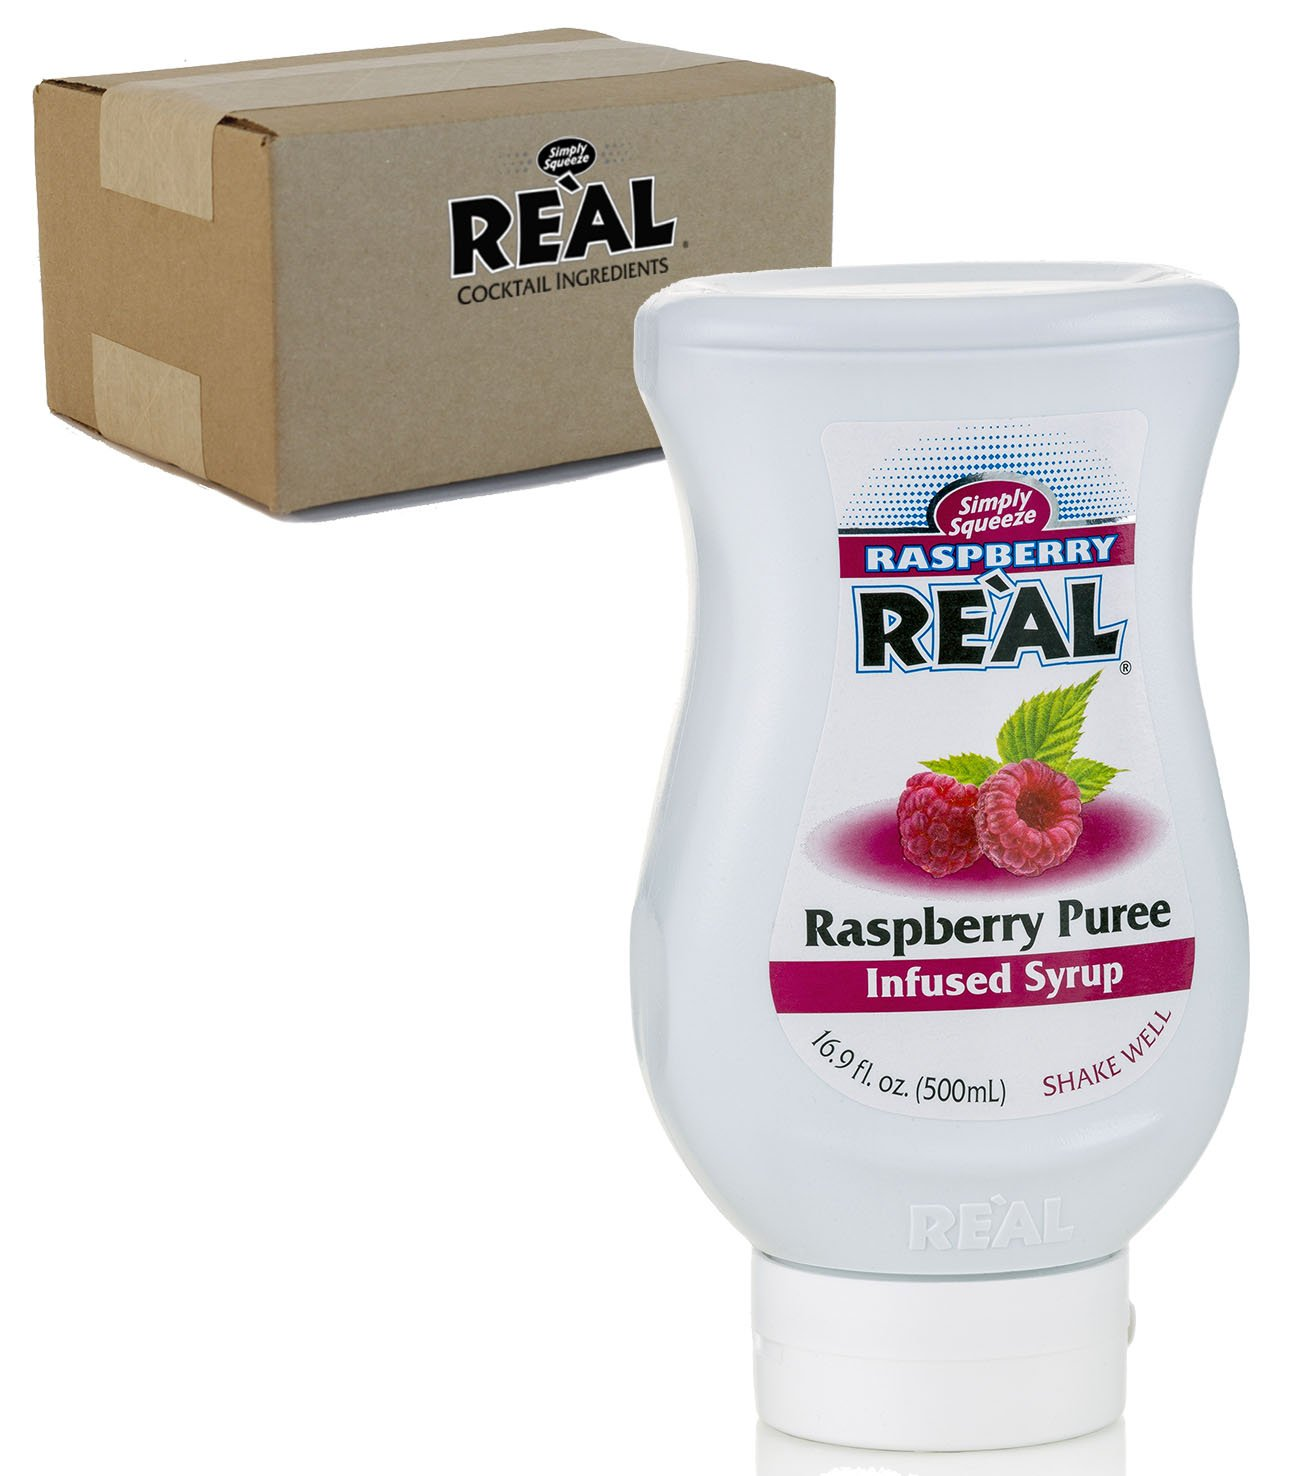 Raspberry Reàl, Raspberry Puree Infused Syrup, 16.9 FL OZ Squeezable Bottle (Pack of 1)